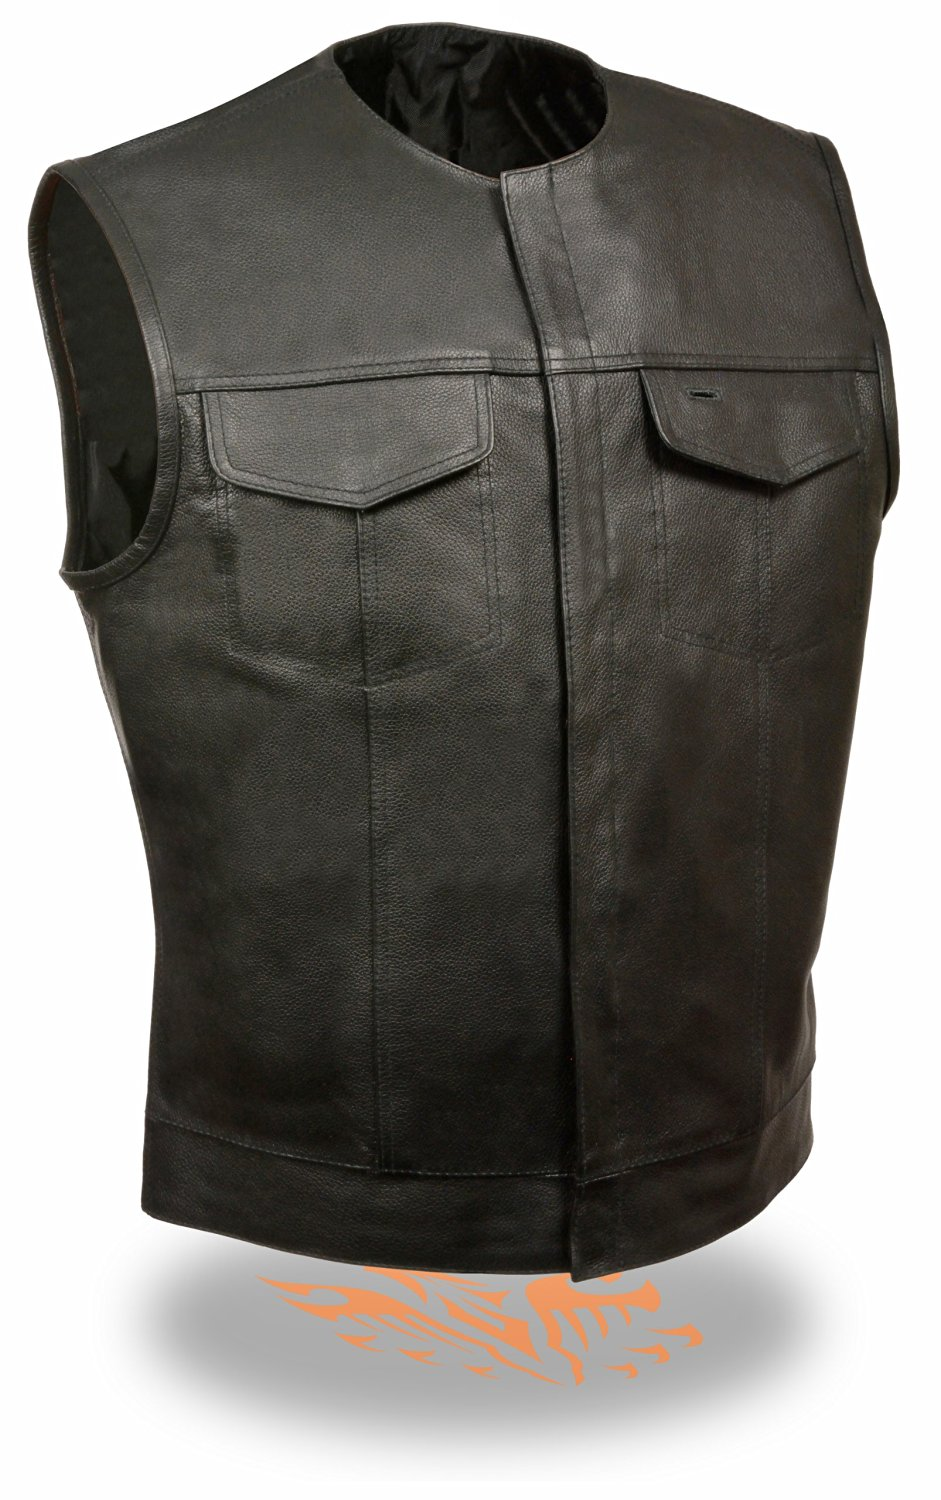 Men's SOA Collarless Leather Vest w/ Dual Inside Gun Drop Pockets Perfect for Club Colors & Patches (Medium)